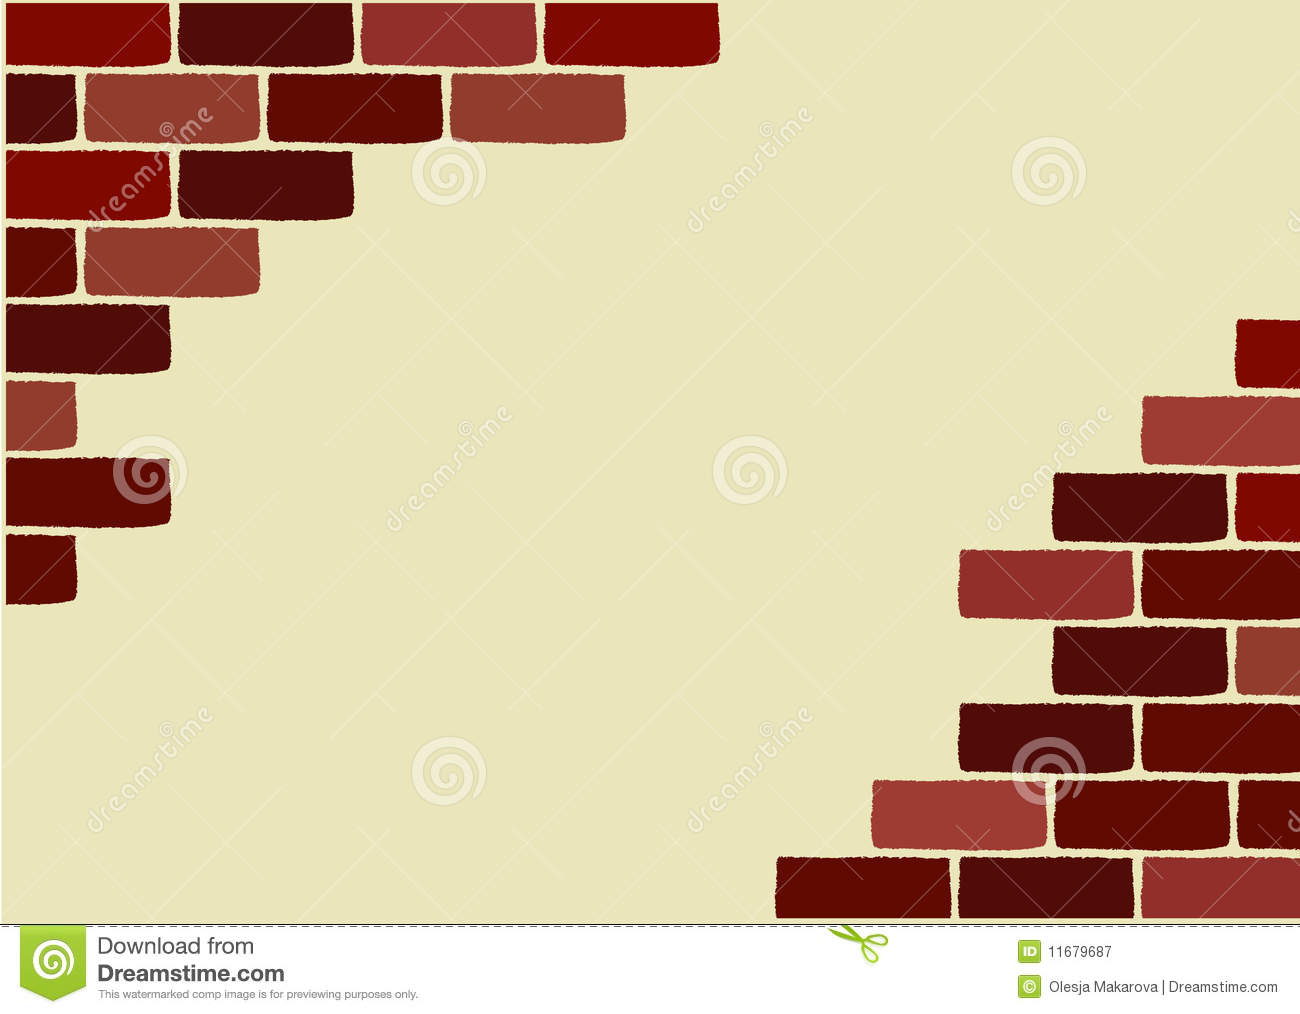 Vector broken brick wall stock vector. Illustration of material ...